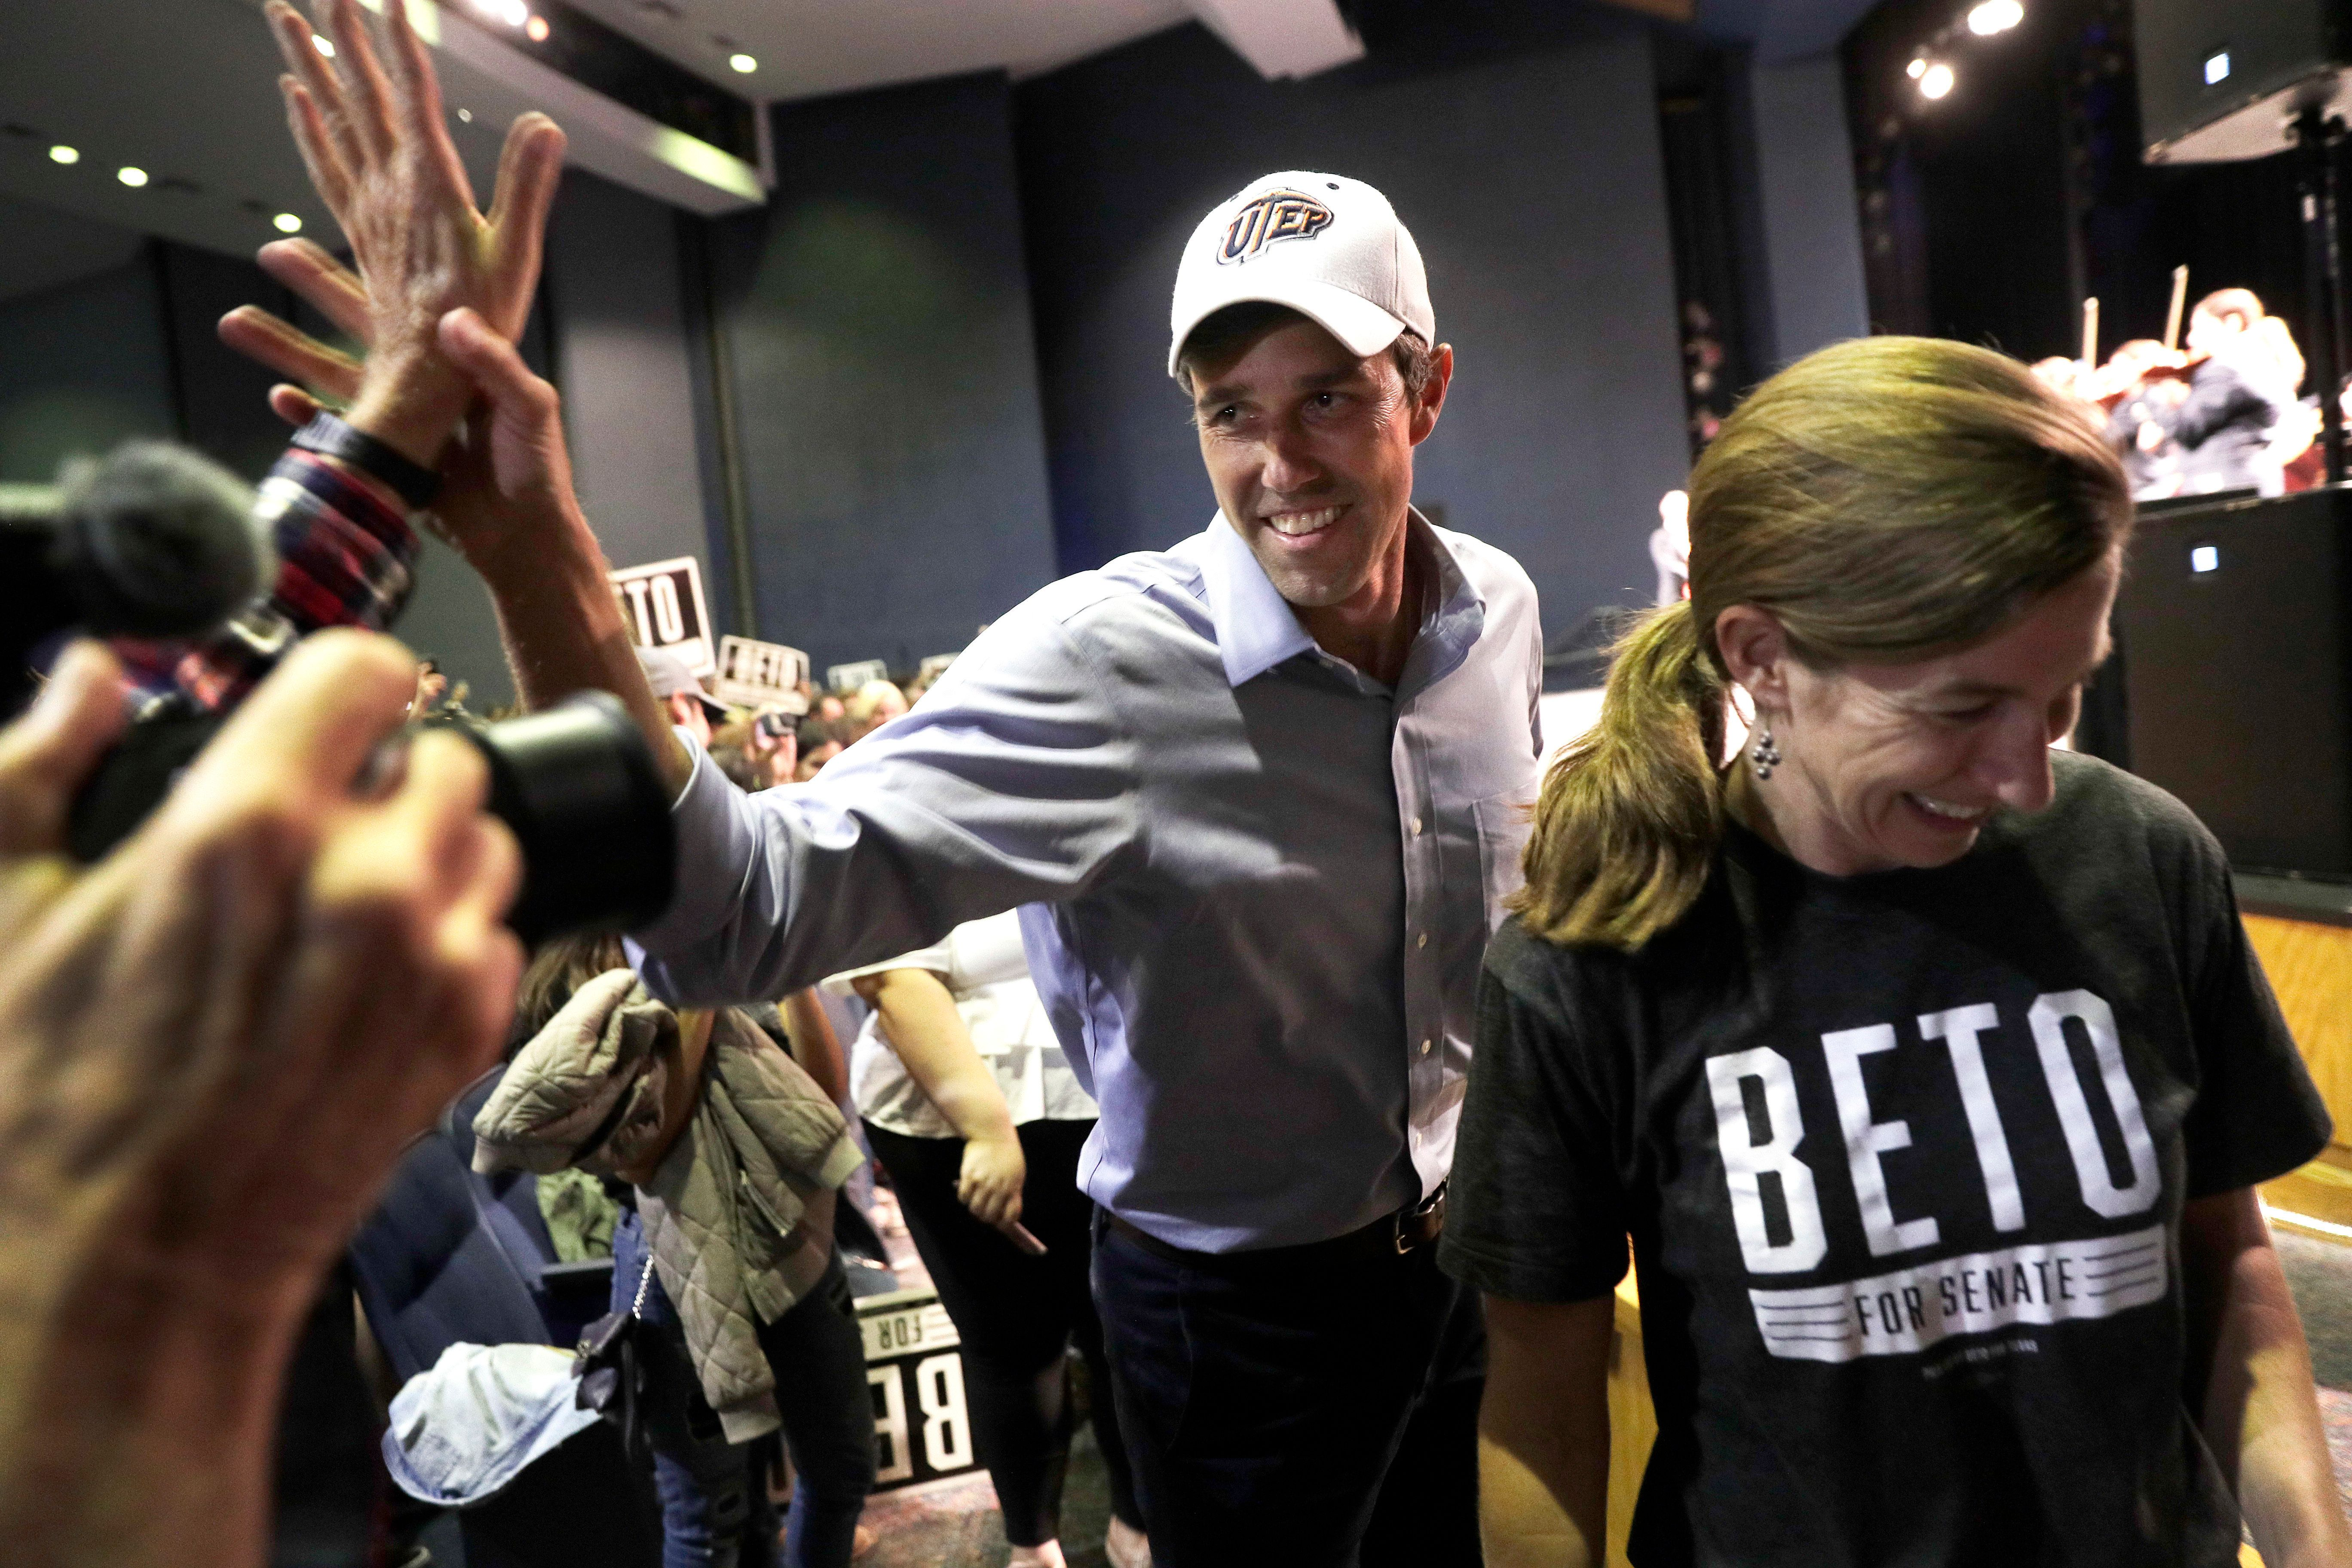 U.S. Rep. Beto O'Rourke, D-El Paso, the 2018 Democratic candidate for U.S. Senate in Texas, with his wife Amy, right, arrives for a campaign rally, Monday, Nov. 5, 2018, in El Paso, Texas. (AP Photo/Eric Gay)